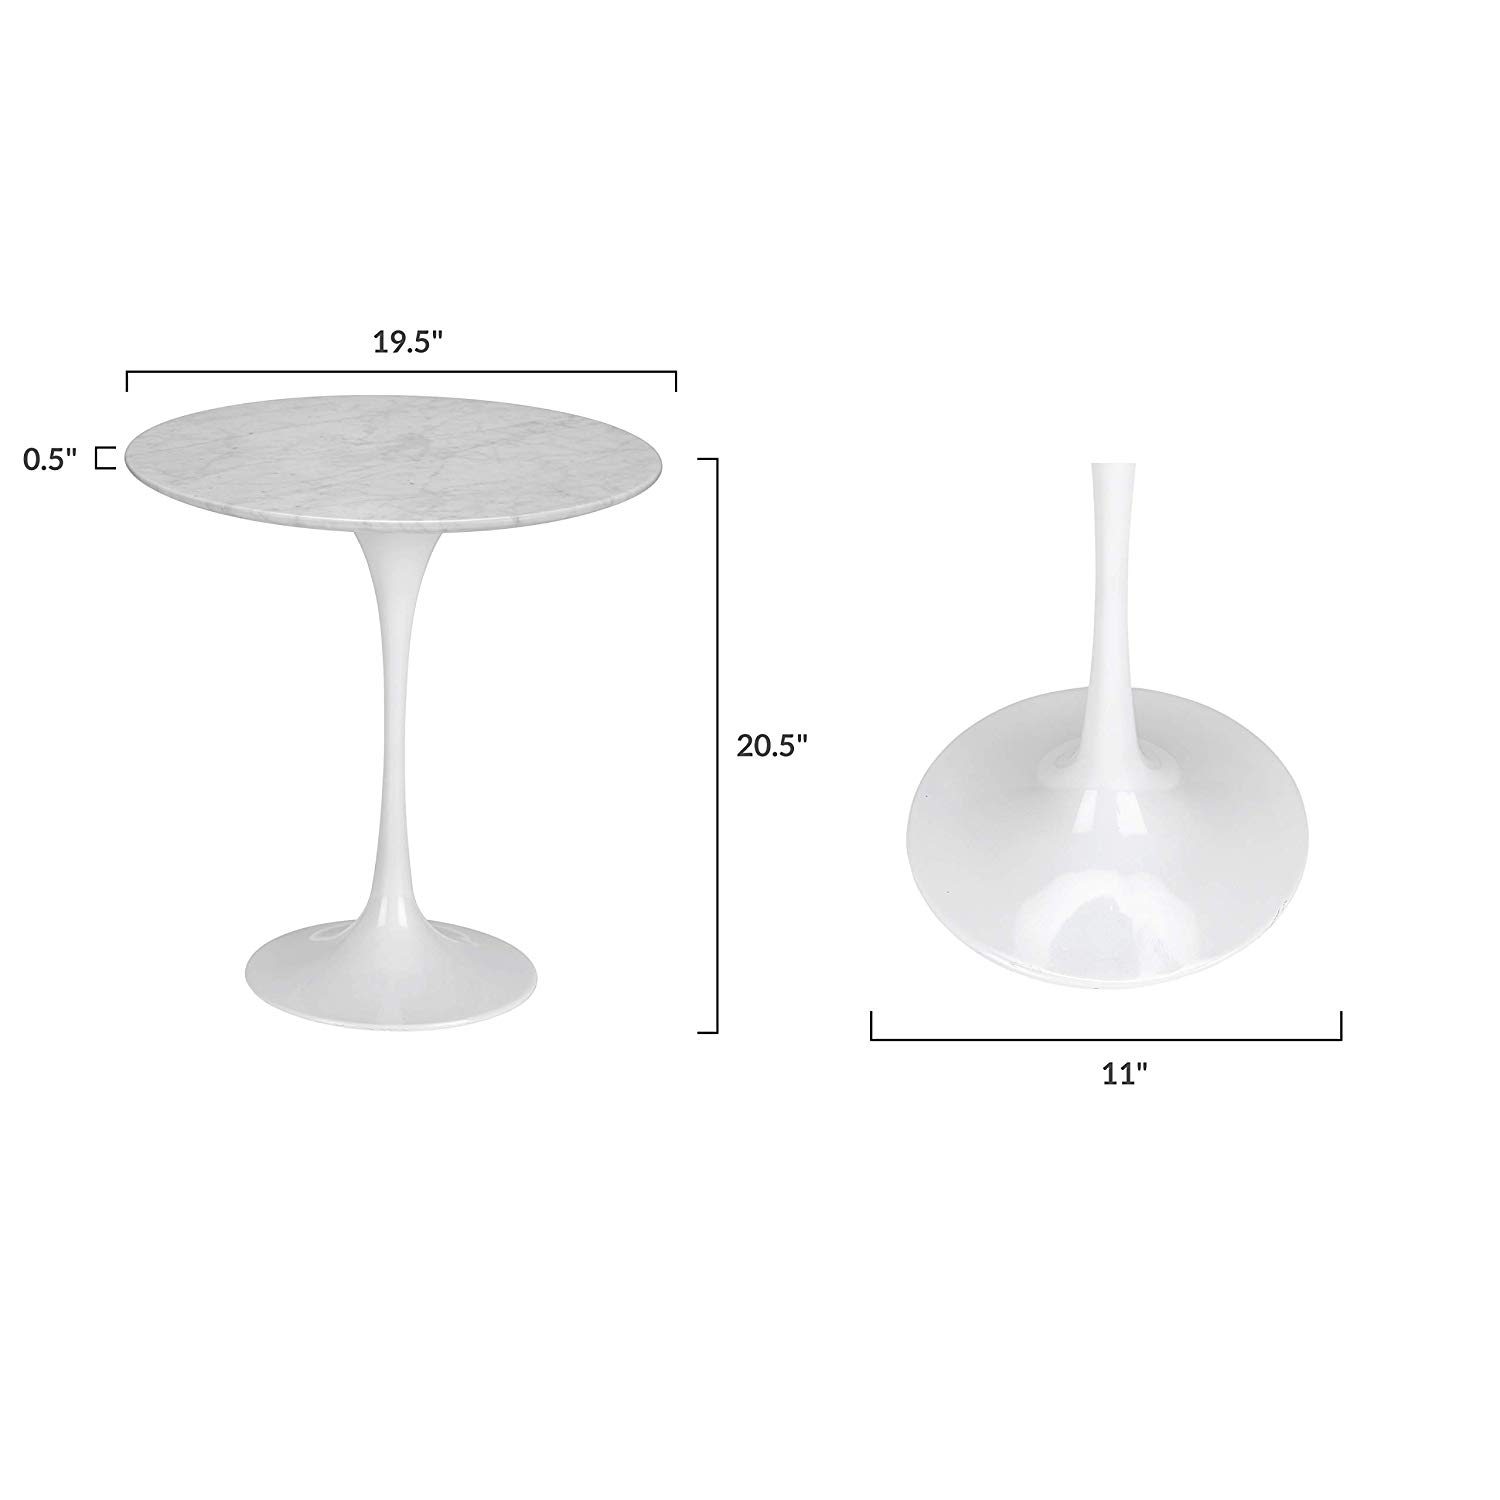 poly and bark daisy marble side table white base hdusjlql signy drum accent with top kitchen dining dinner lamp sets blue striped patio umbrella acrylic night homemade outdoor